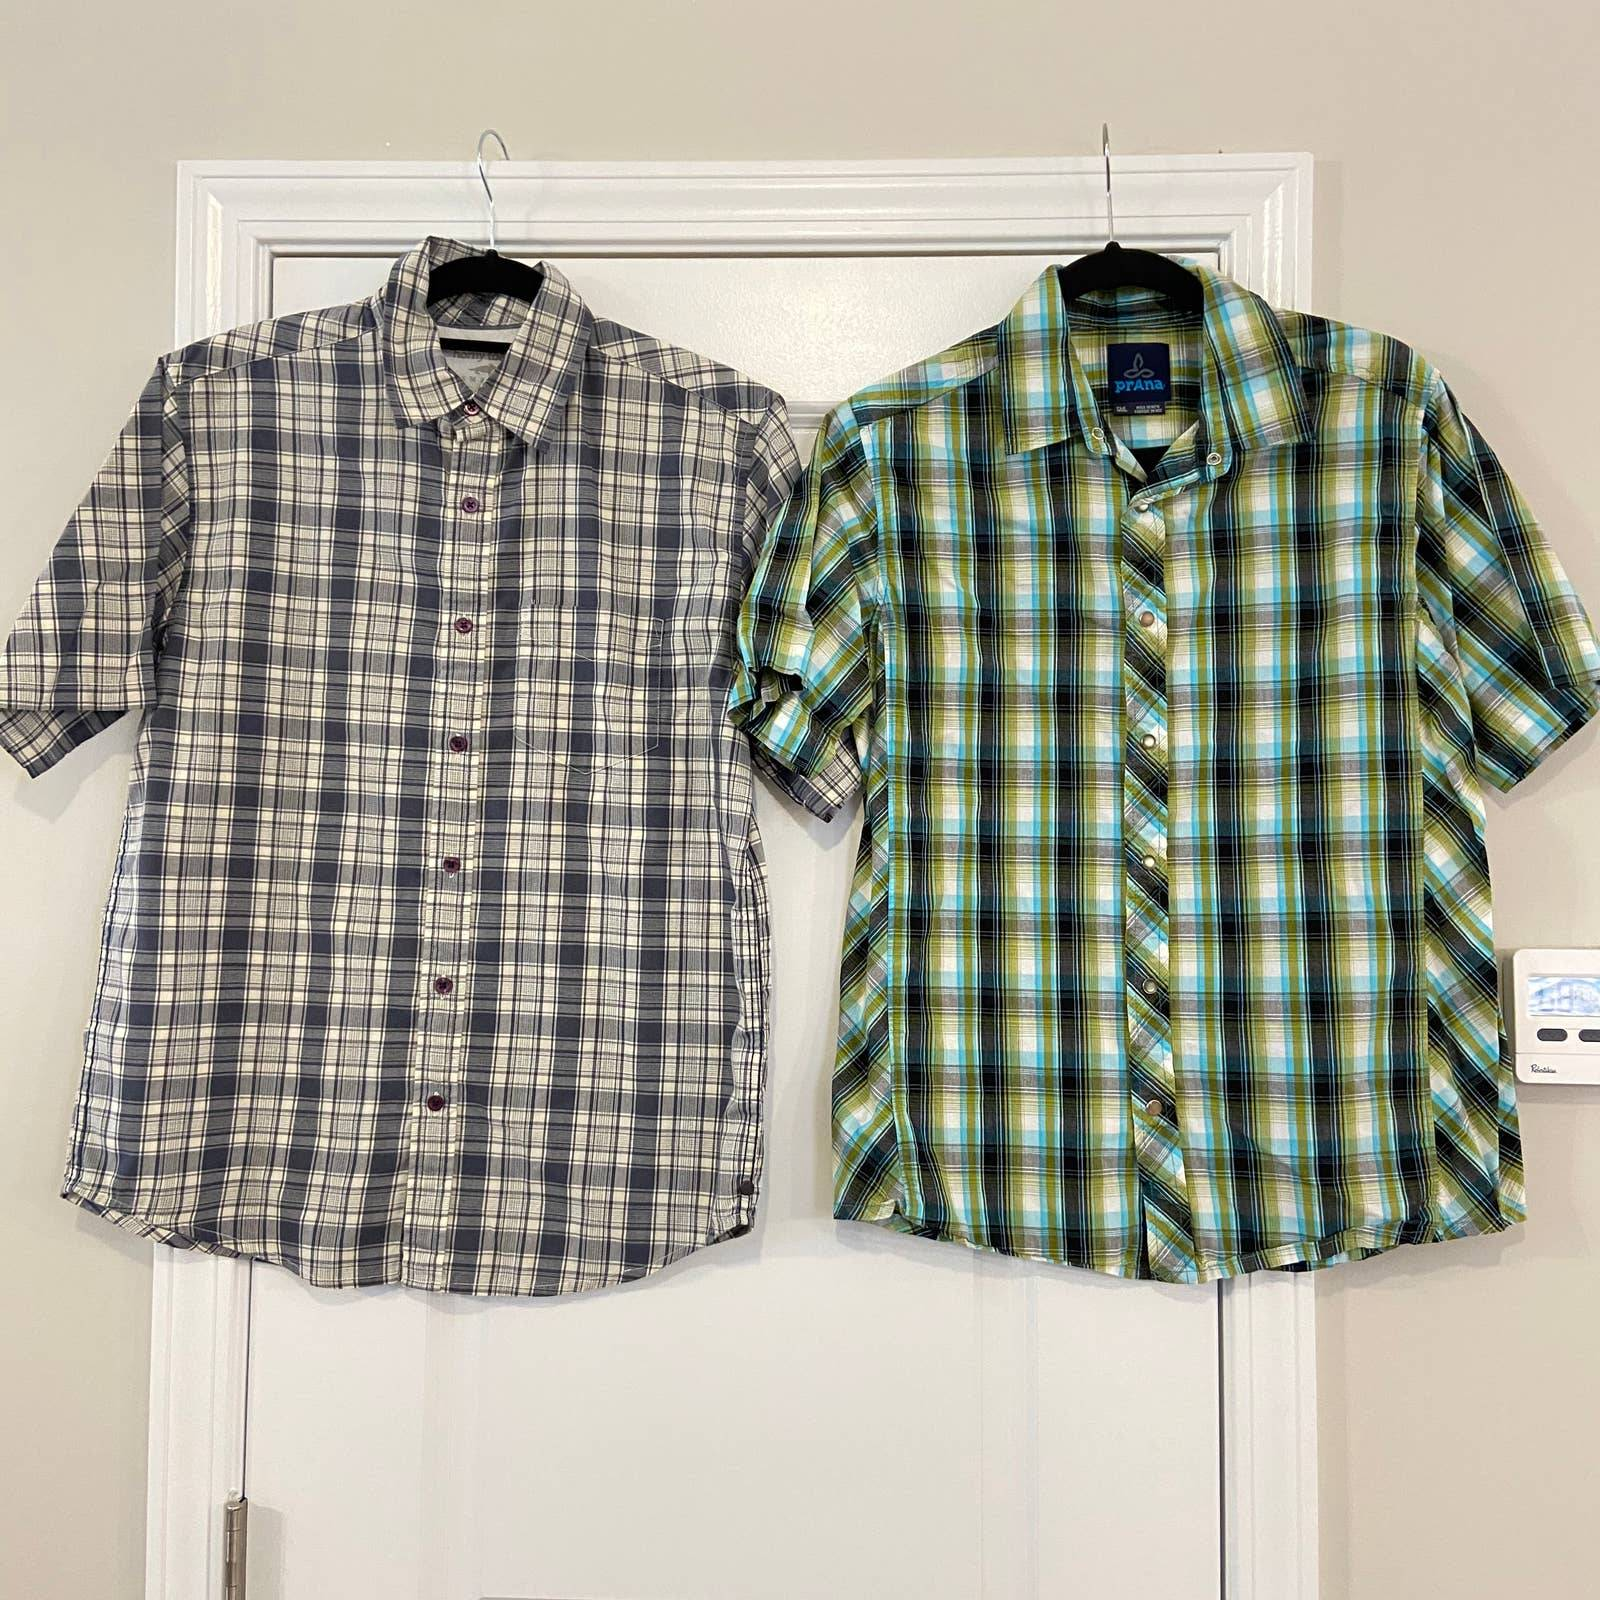 2 plaid button front shirt sleeves